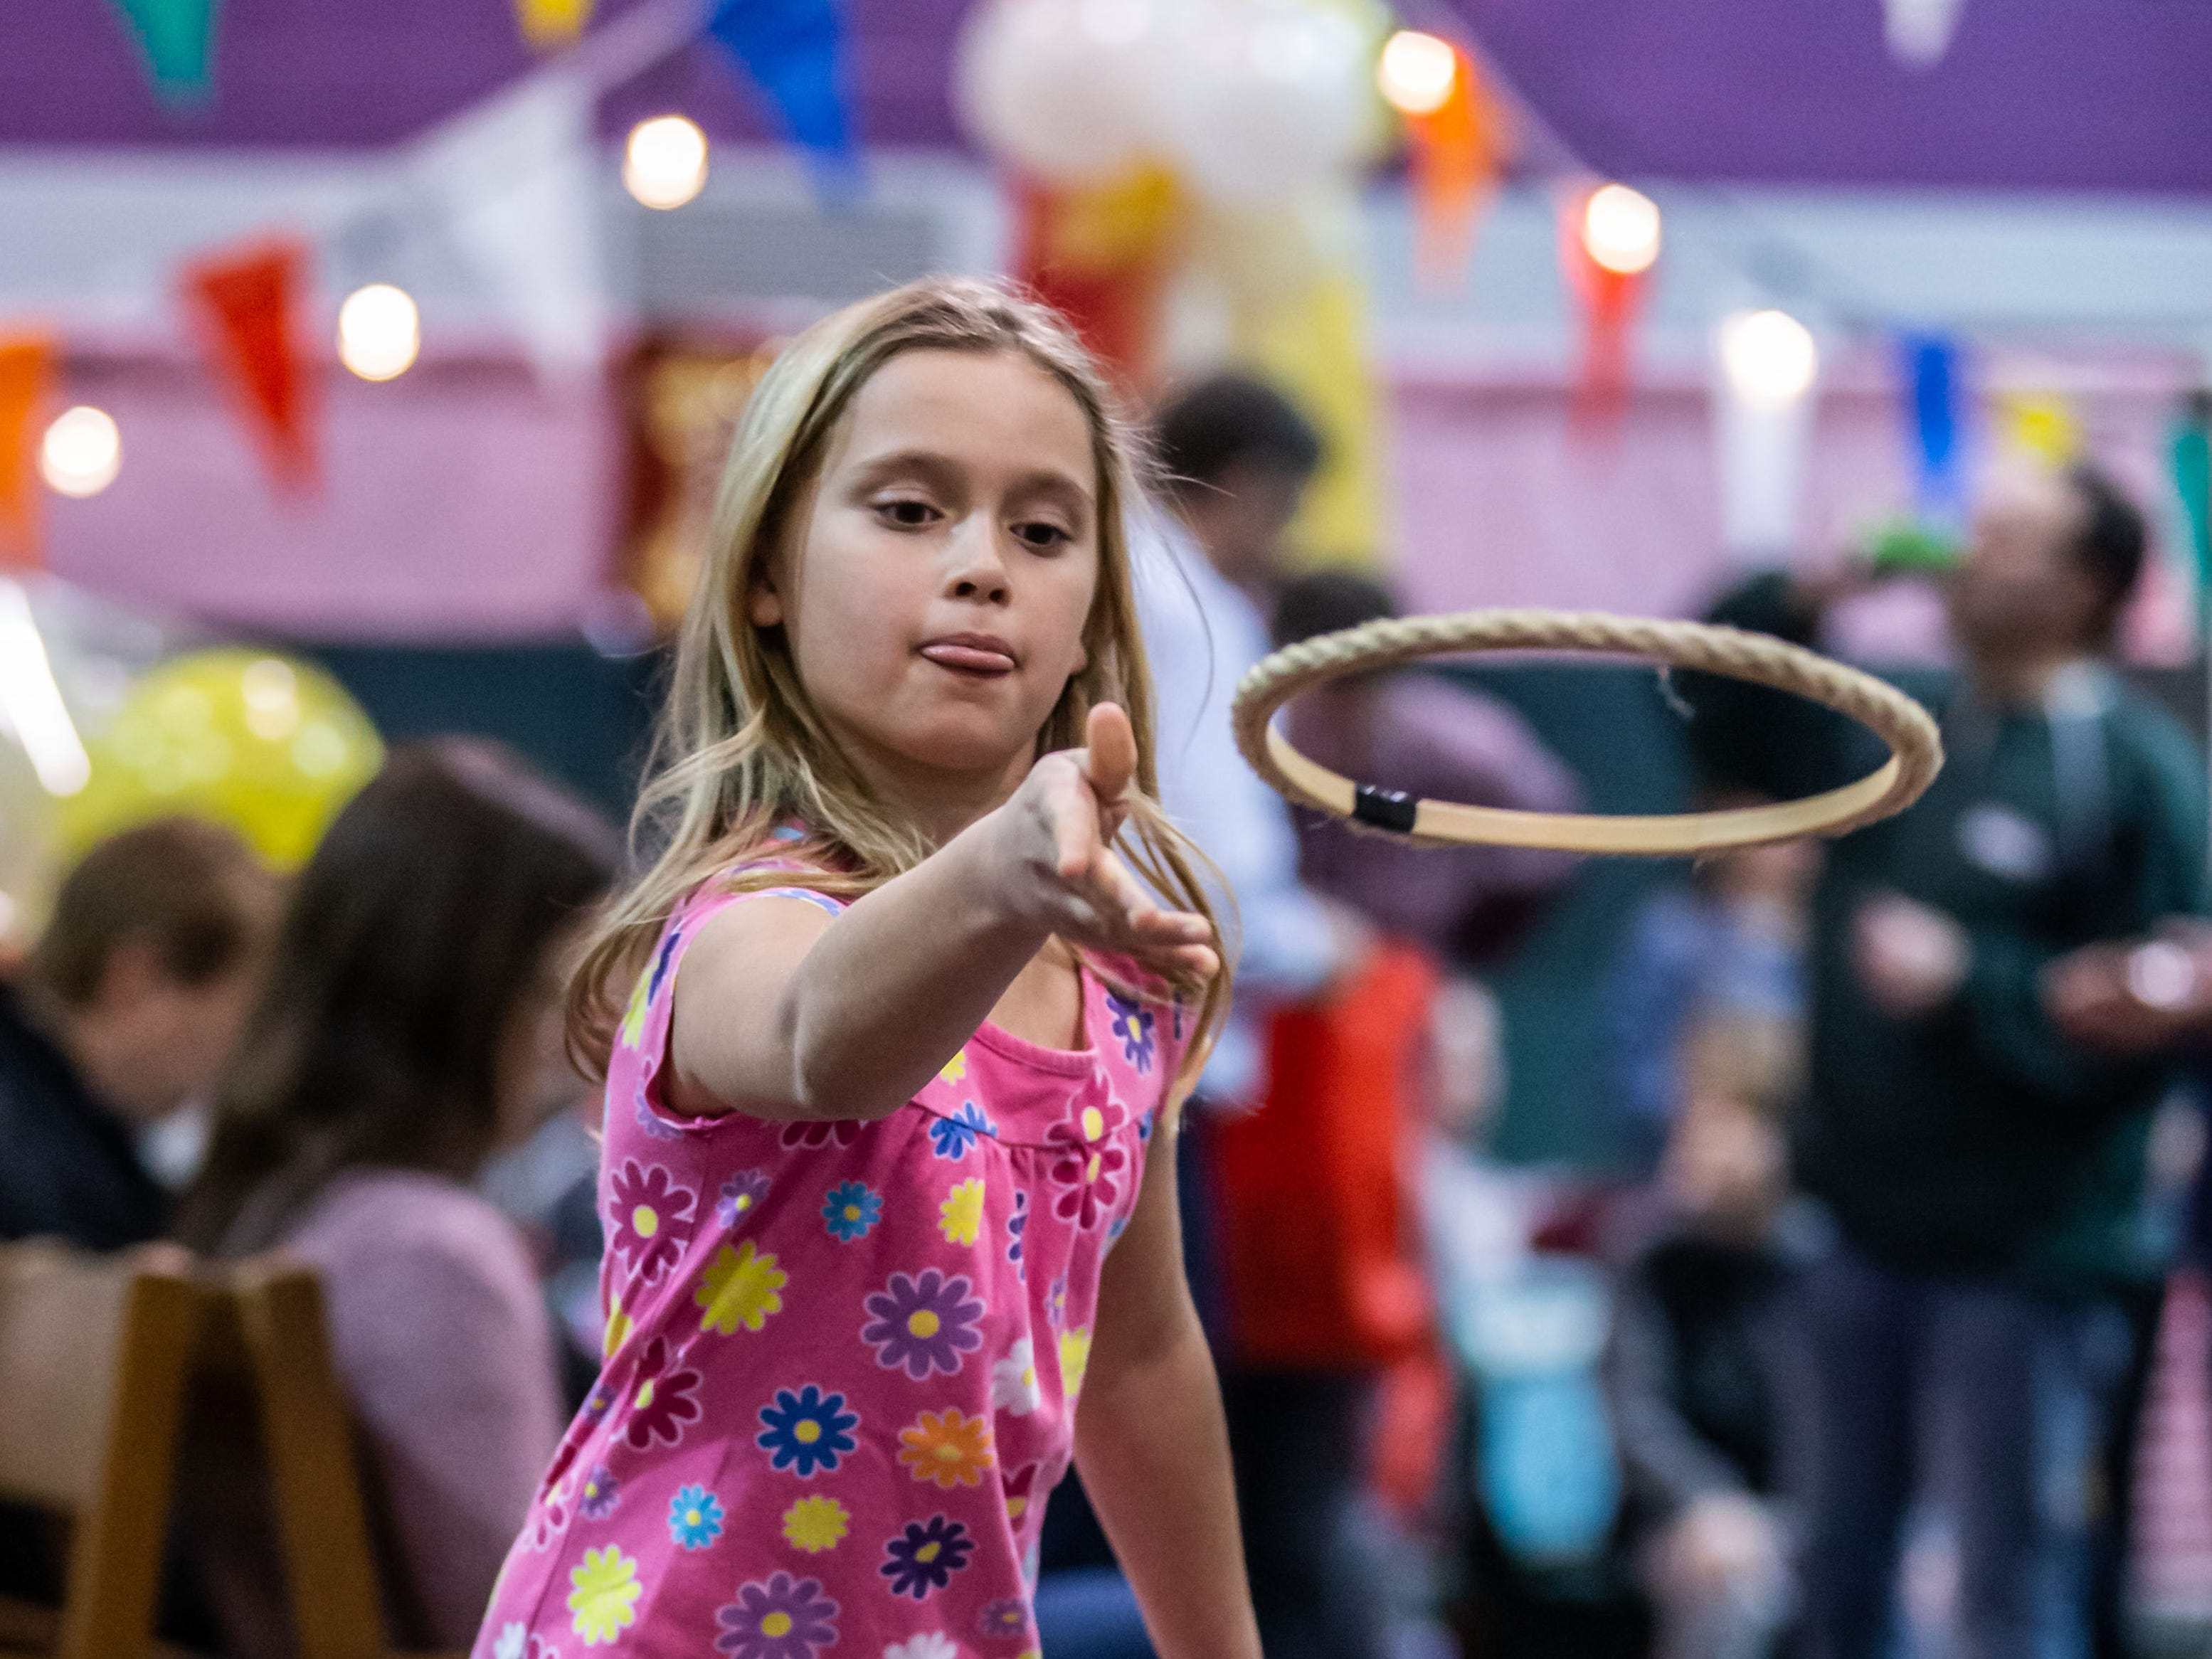 Gaby Bichanich, 7, of Oconomowoc, plays a hoop game during the 9th annual St. Joan of Arc Carnival in Nashotah on Friday, Feb. 1, 2019. The family-friendly event features carnival games, food, face painting, balloon animals, a fortune teller and more.